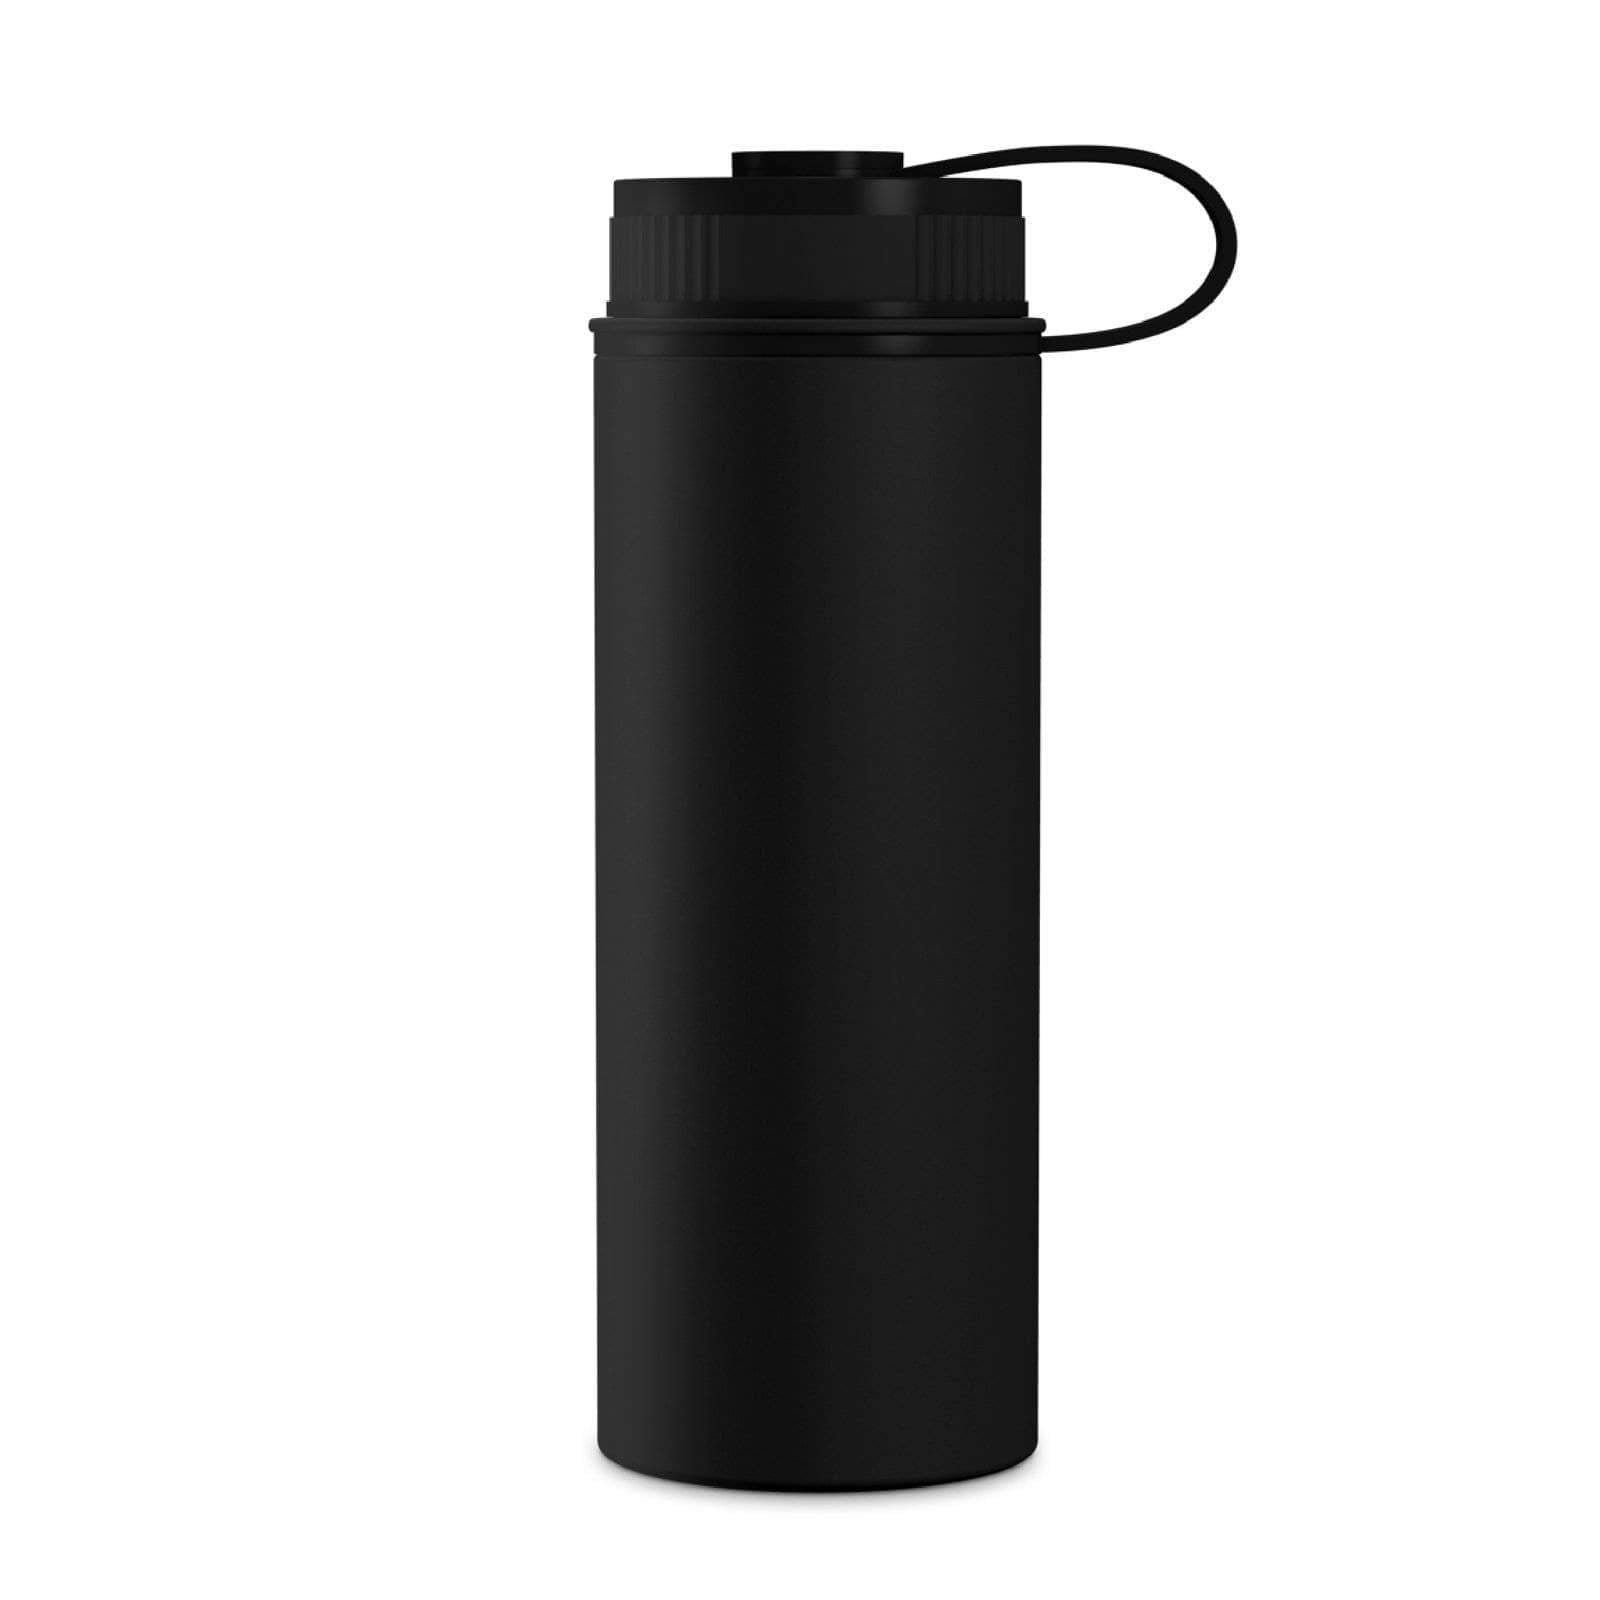 Geo Bottles Black 18oz Double Wall Vacuum Insulated Flask, Wide Mouth